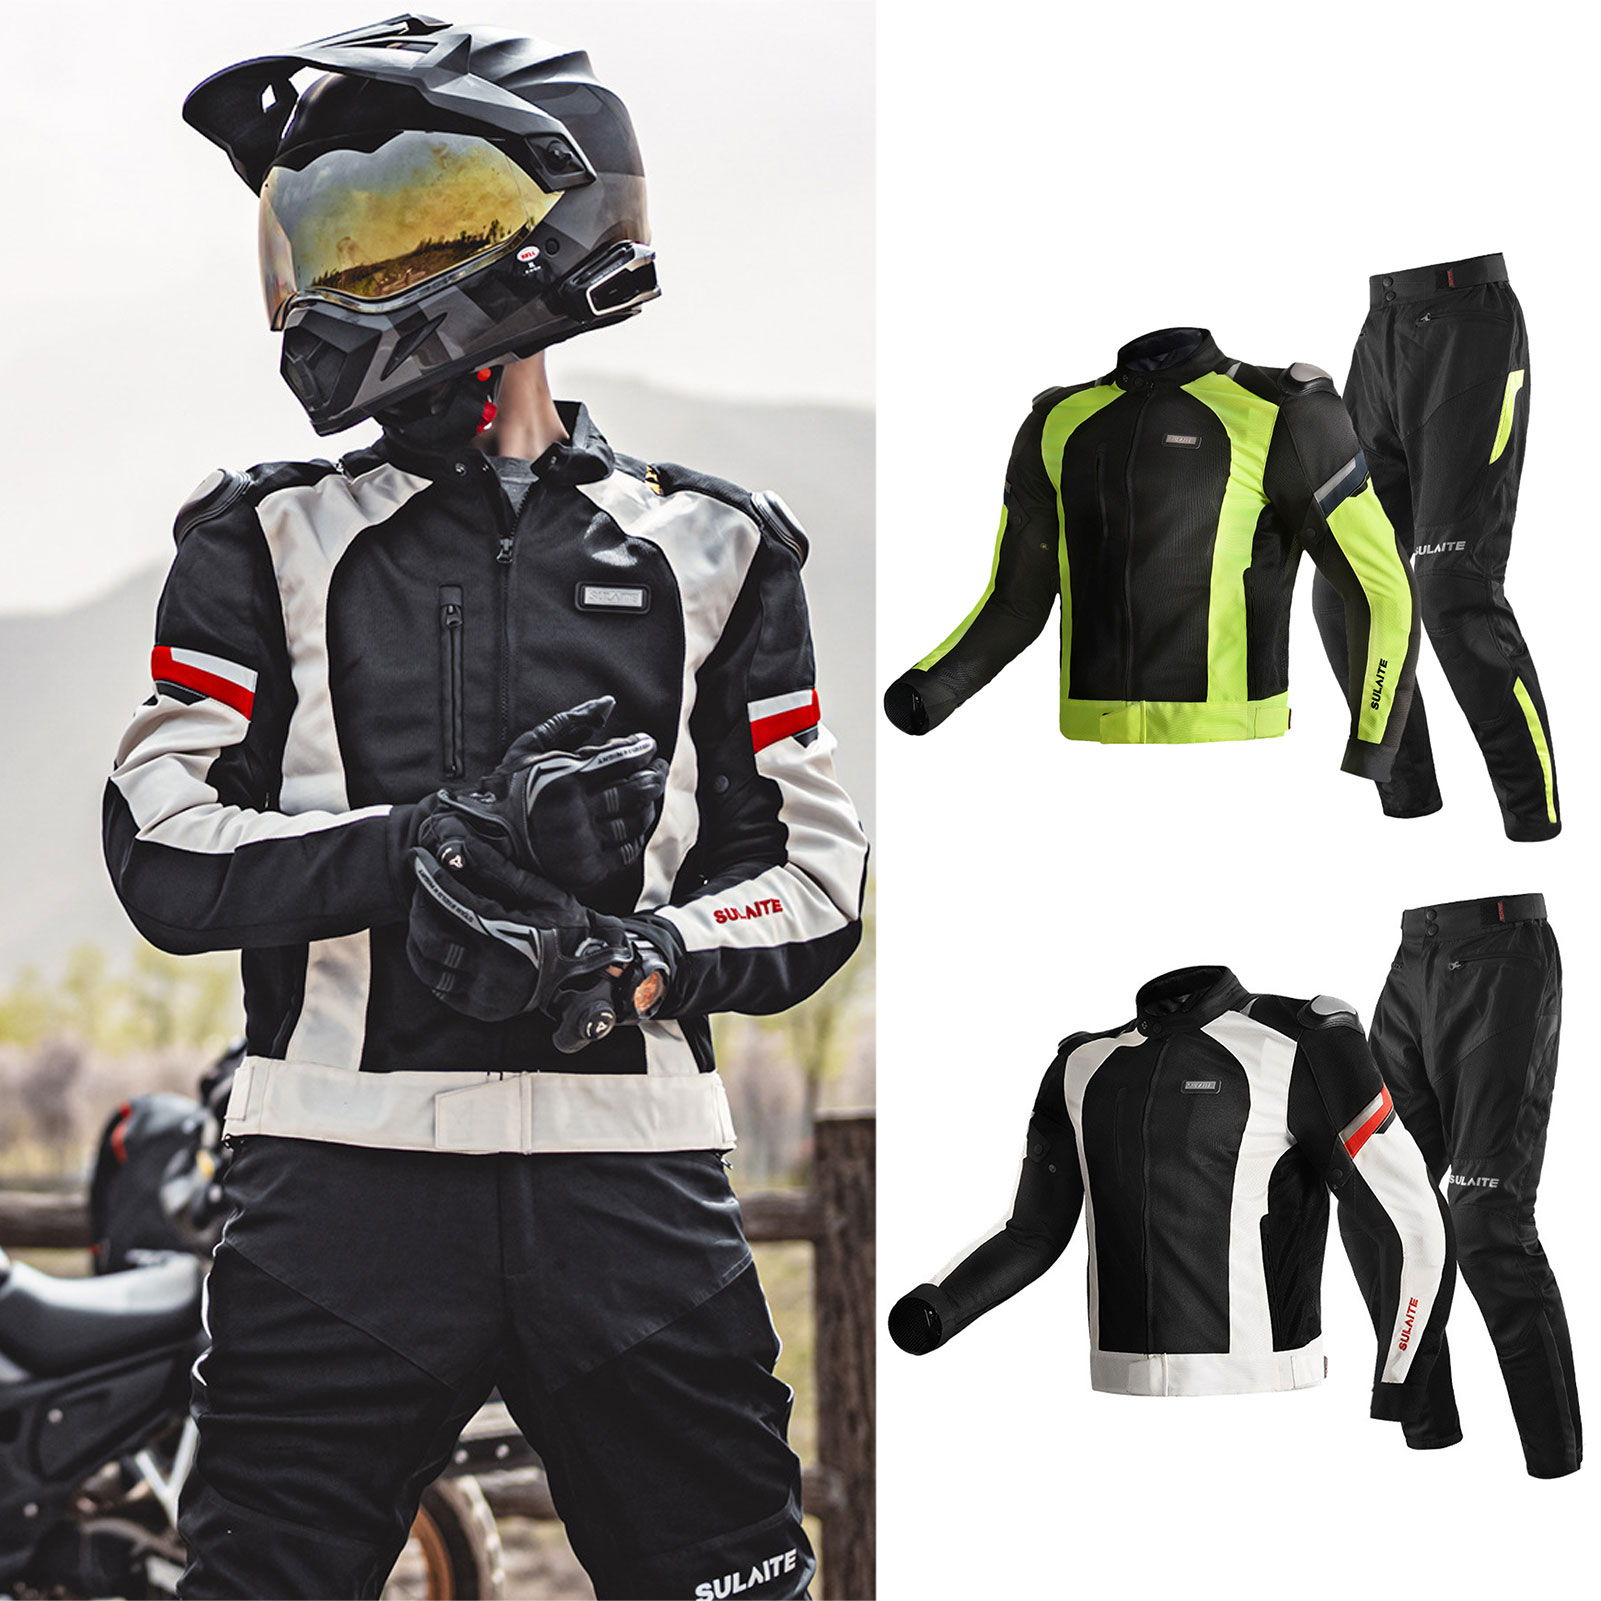 4 Seasons Motorcycle Jacket Racing Breathable Reflection Riding Outfit ATV Motocross Body Protection Clothing Brilliant